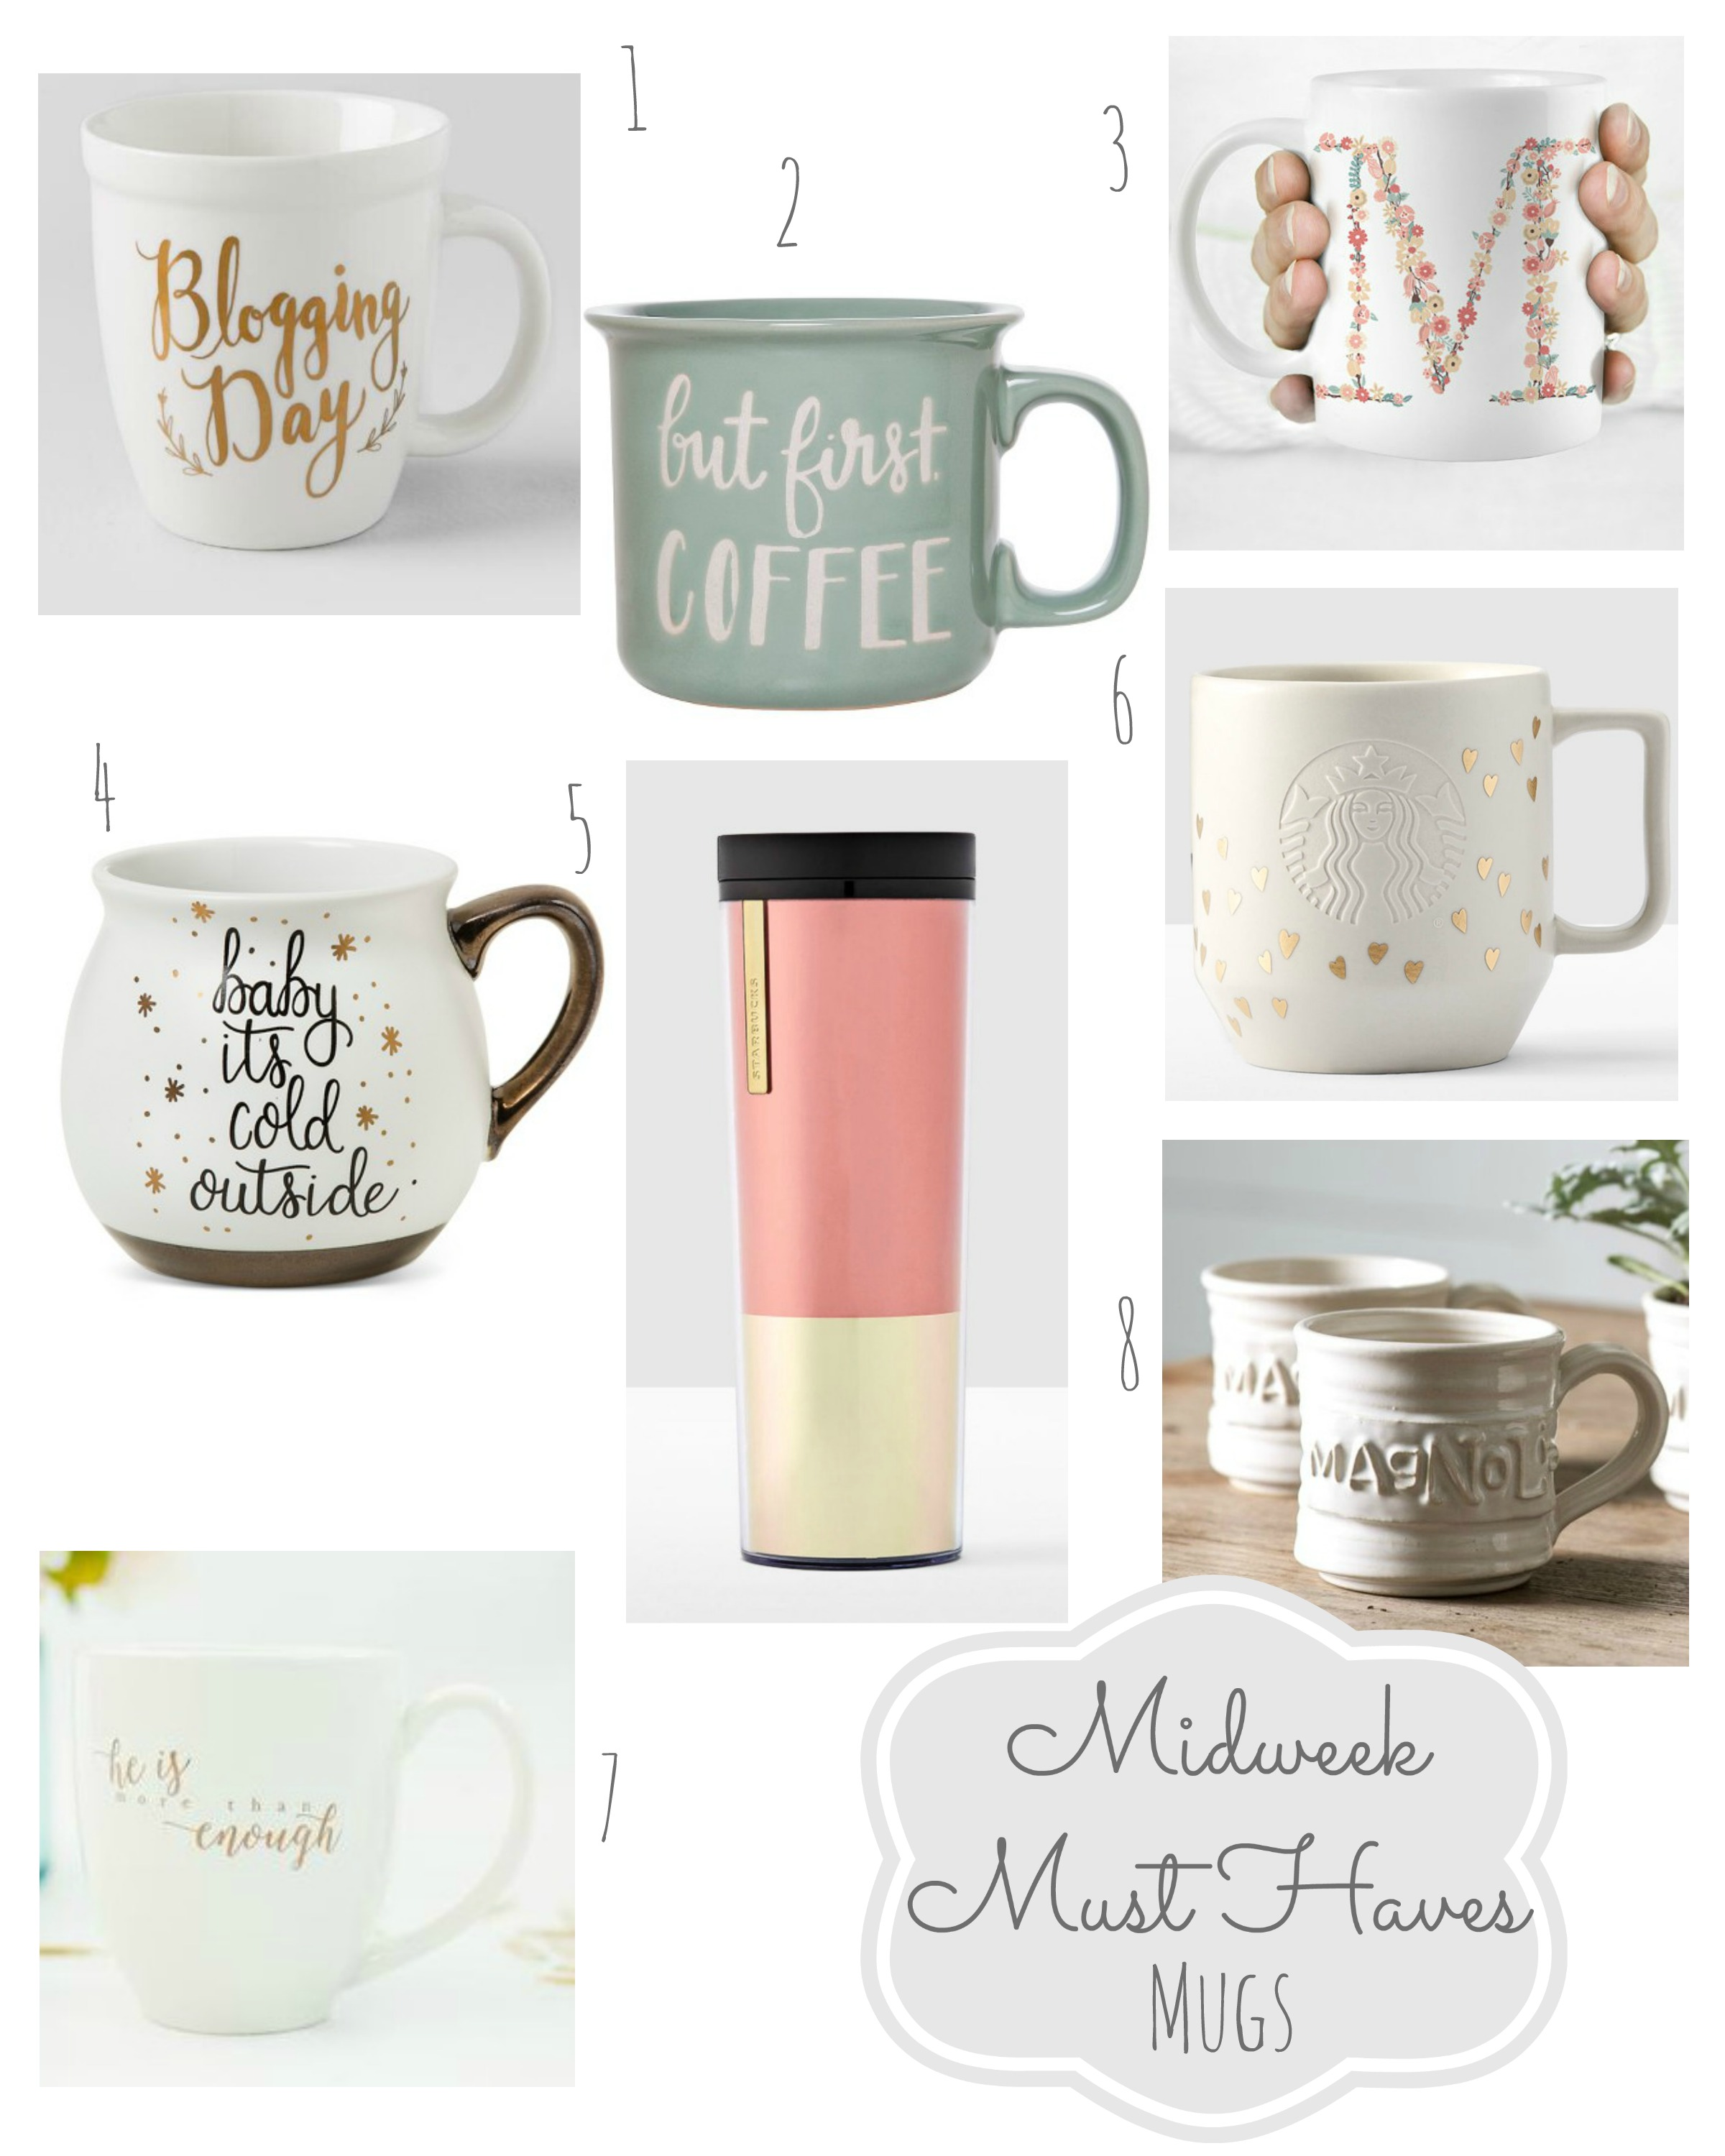 Midweek Must Haves Mugs Coffee Cups Gift Guide From the Family With Love main2